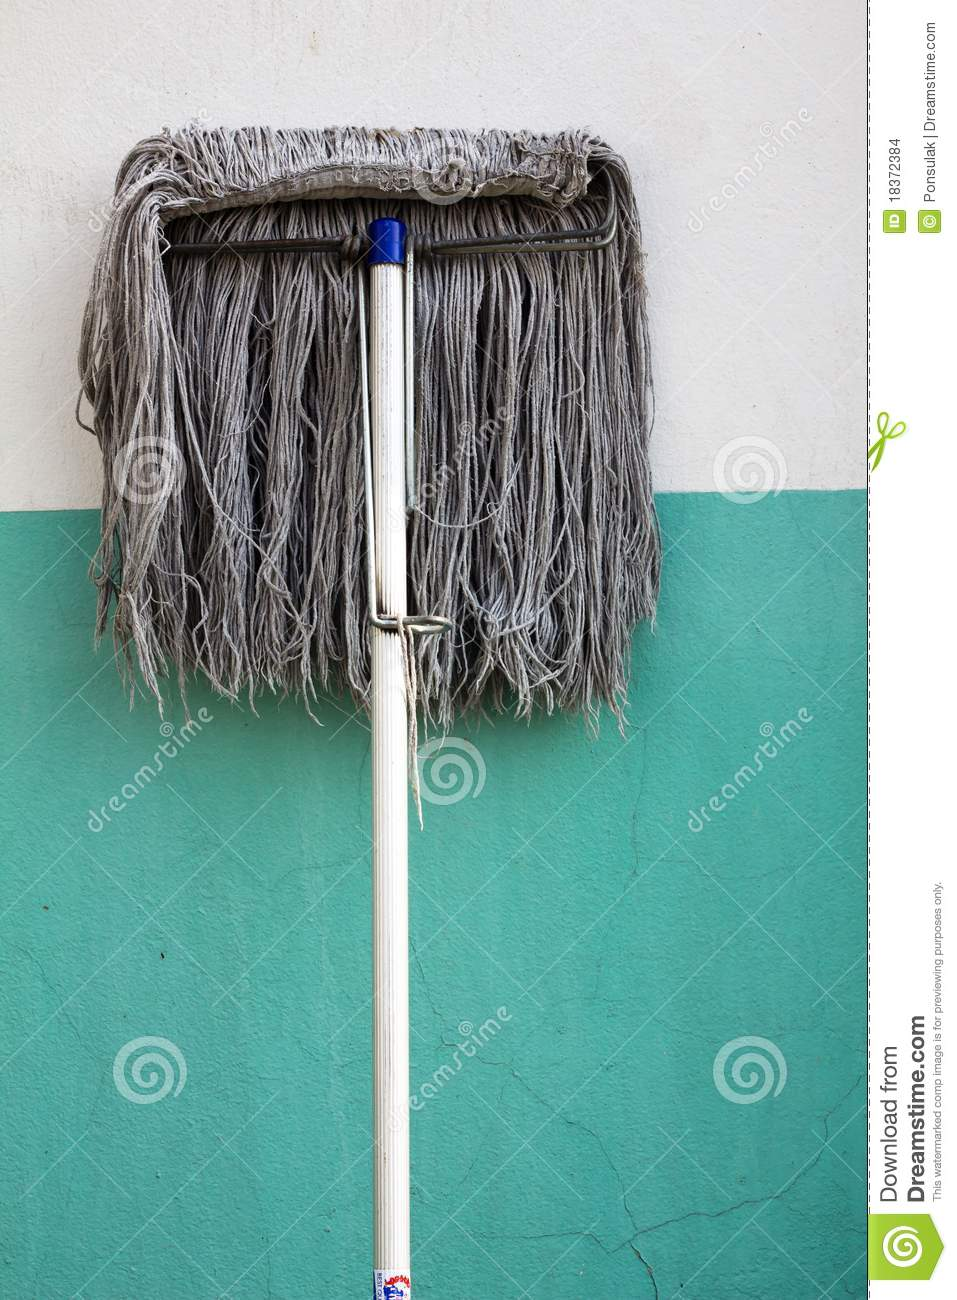 Dirty Mop Texture Background Stock Photo - Image: 79038045